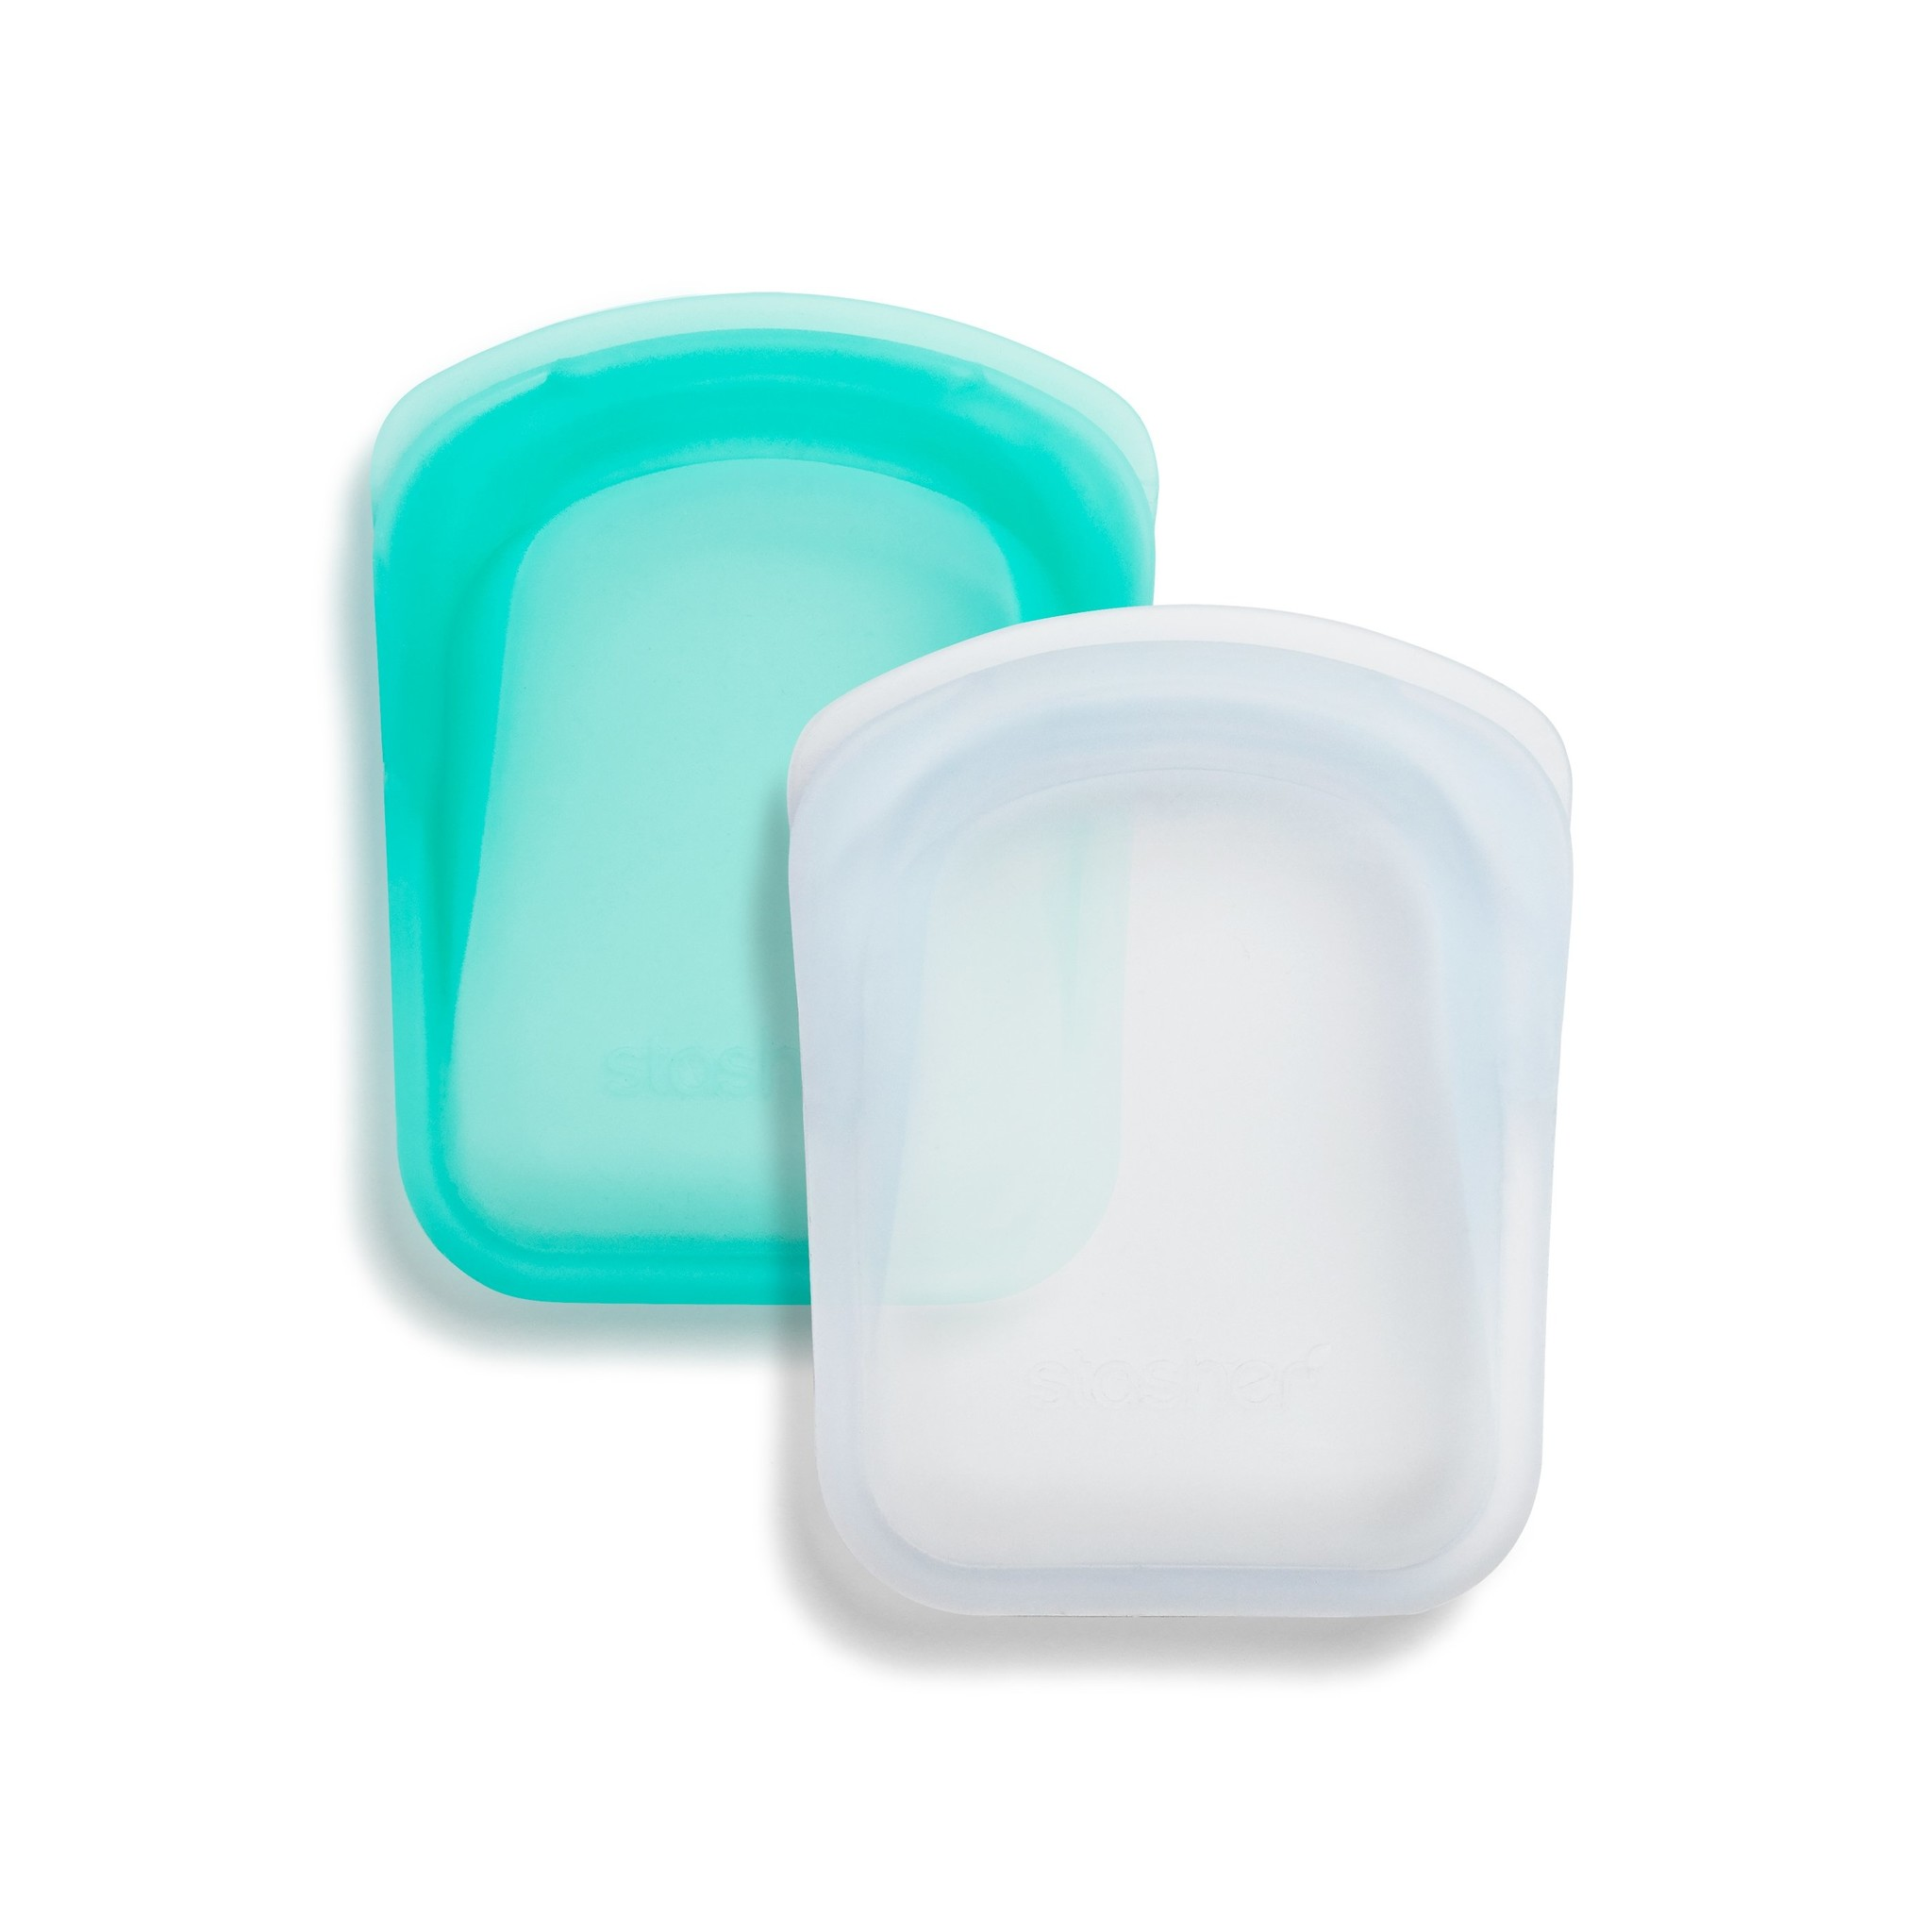 Stasher Pocket 2-Pack Storage Bag - Aqua/Clear